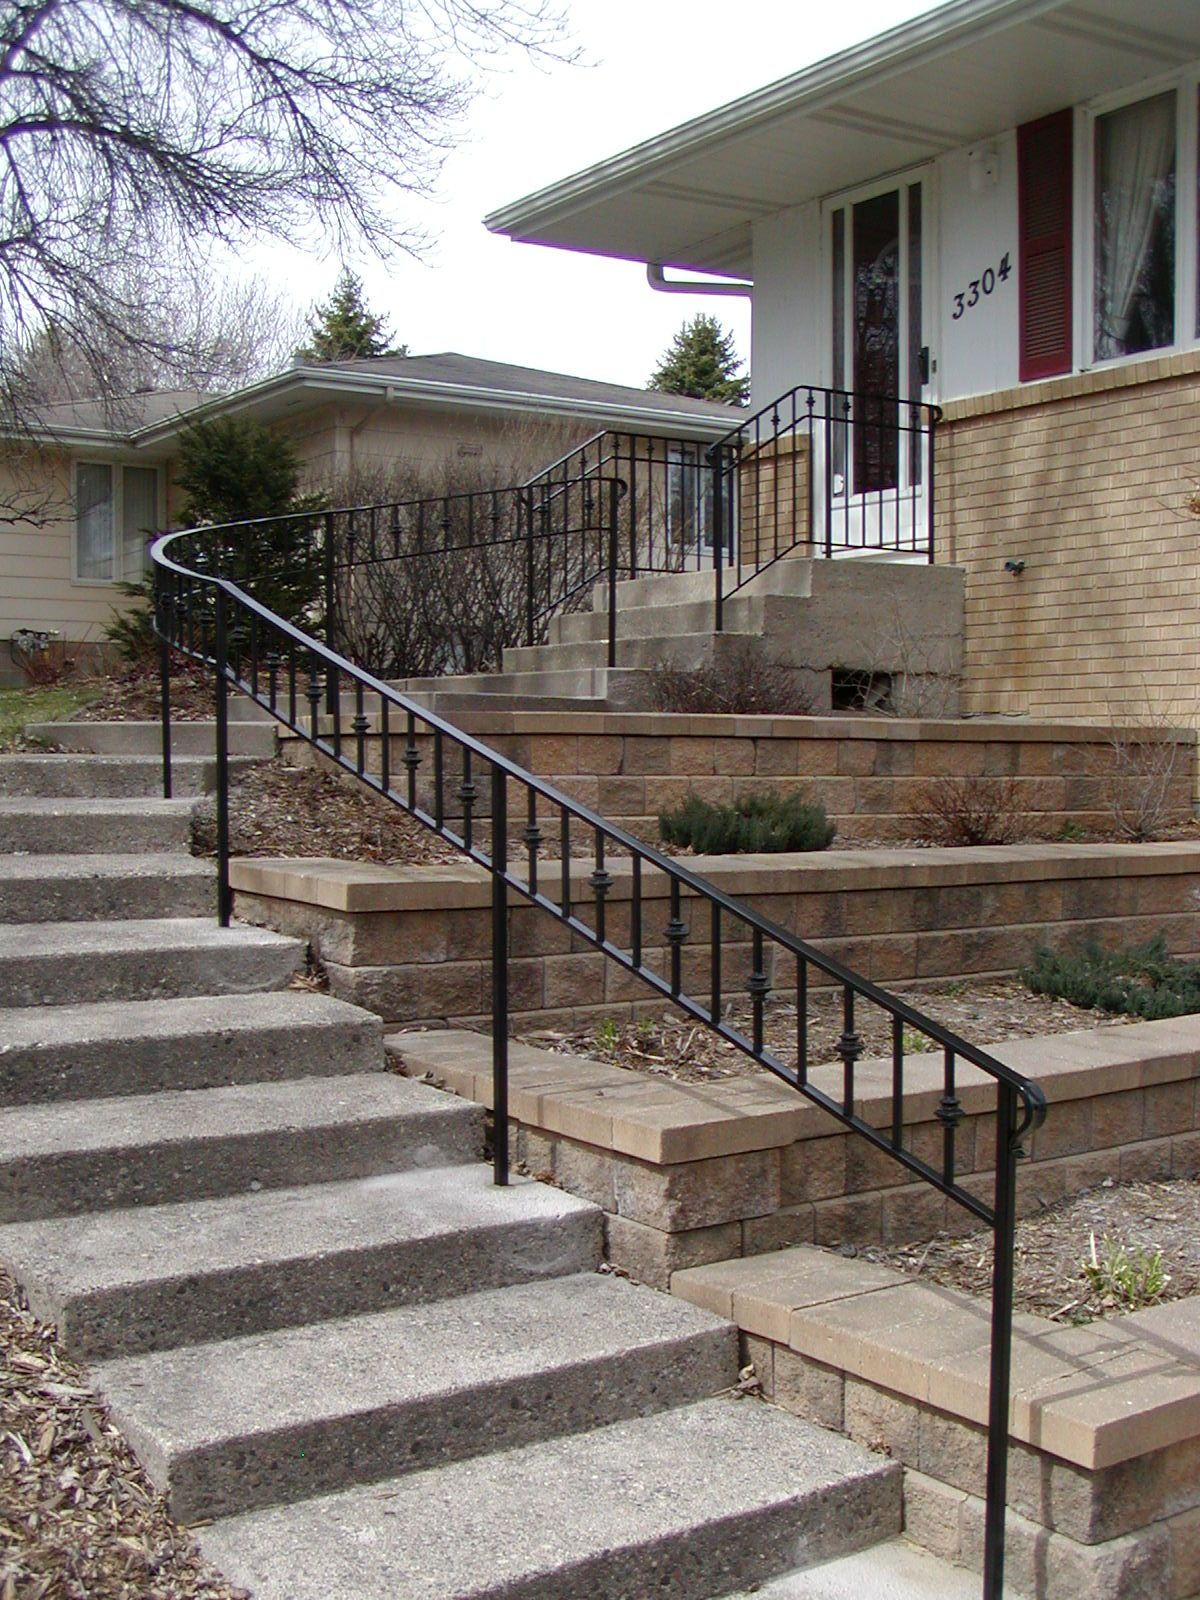 Curved Iron Step Railing Railings Outdoor Iron Railings | Iron Railings For Steps